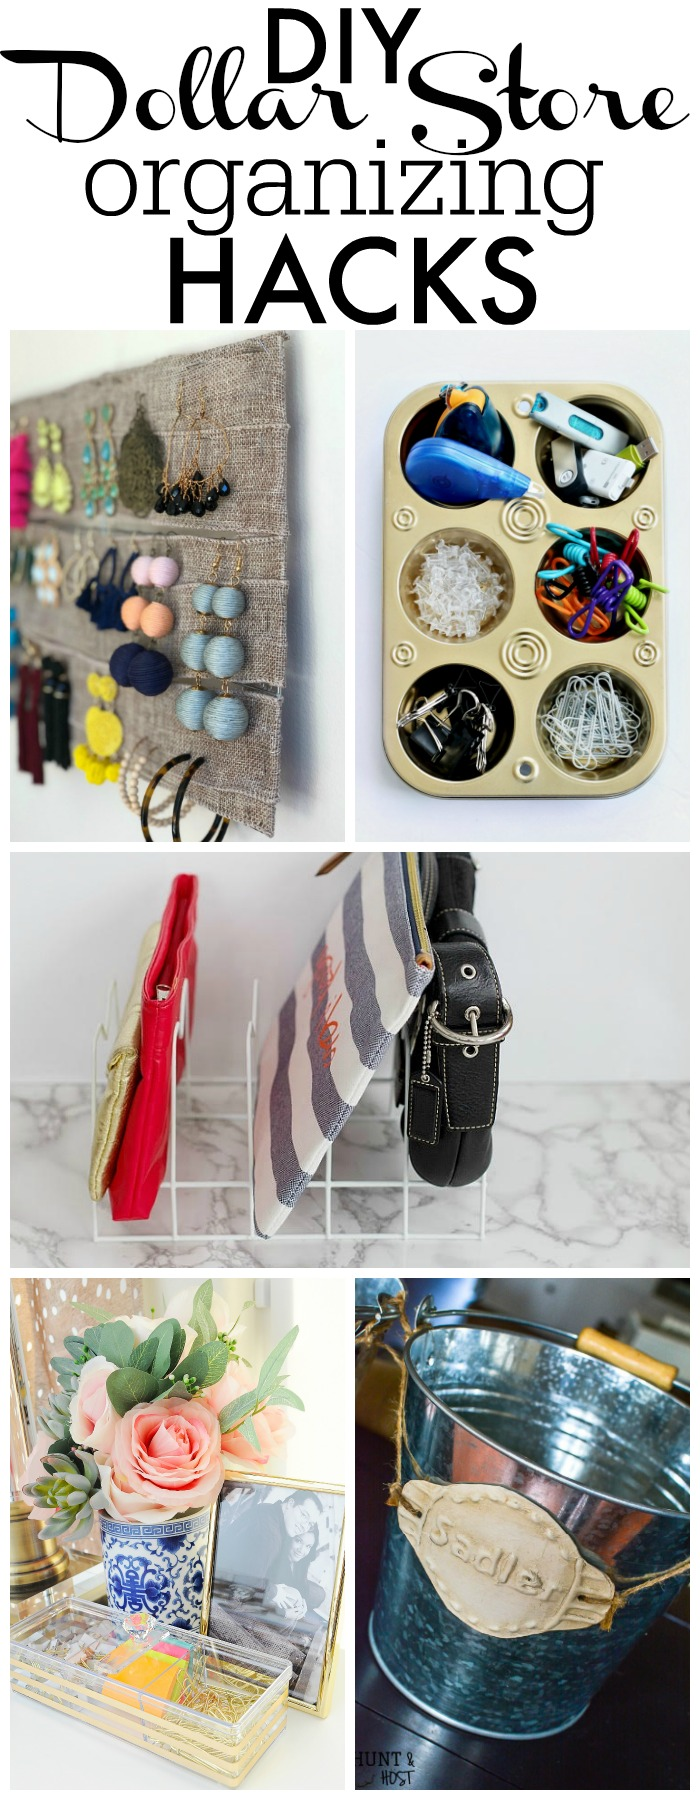 DIY Dollar Store organizing hacks - My Dollar Store DIY organizational ideas